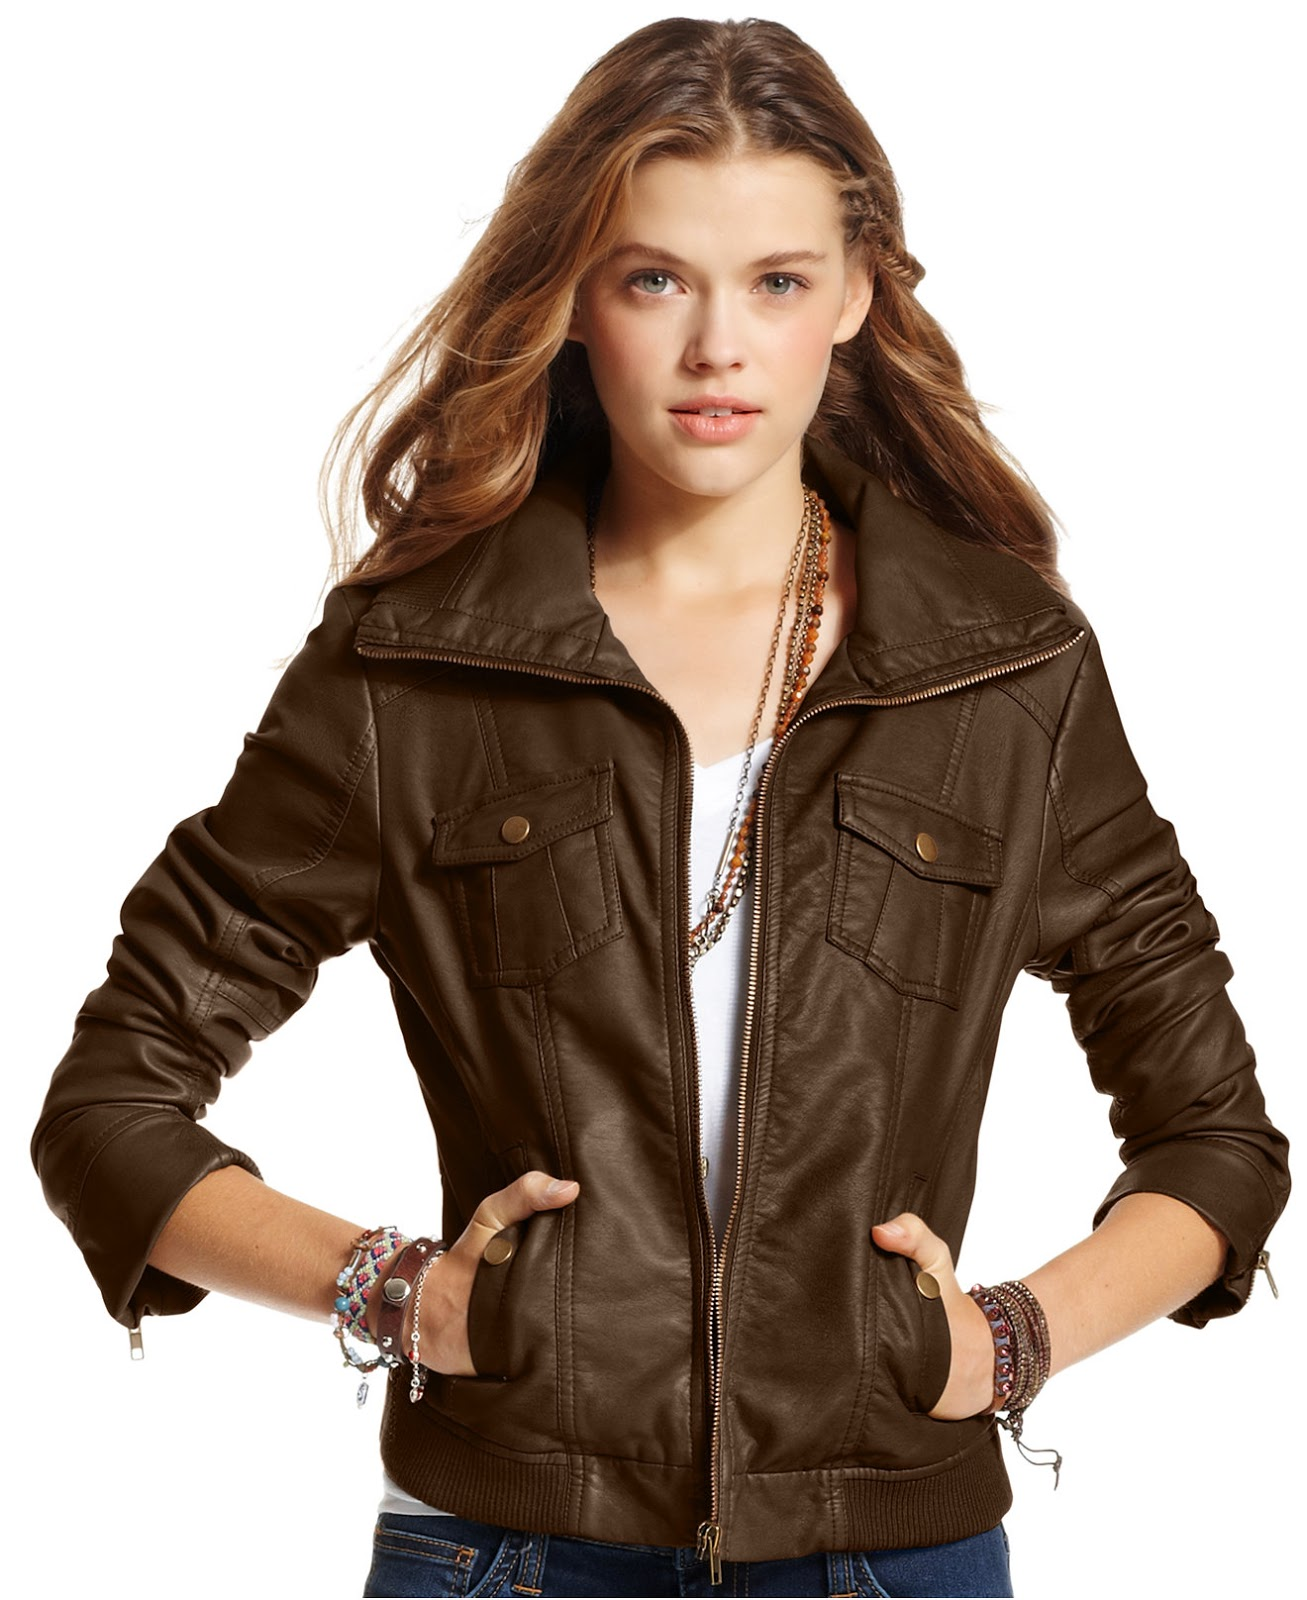 Synthetic Leather Jackets: Women's Fashion Tips